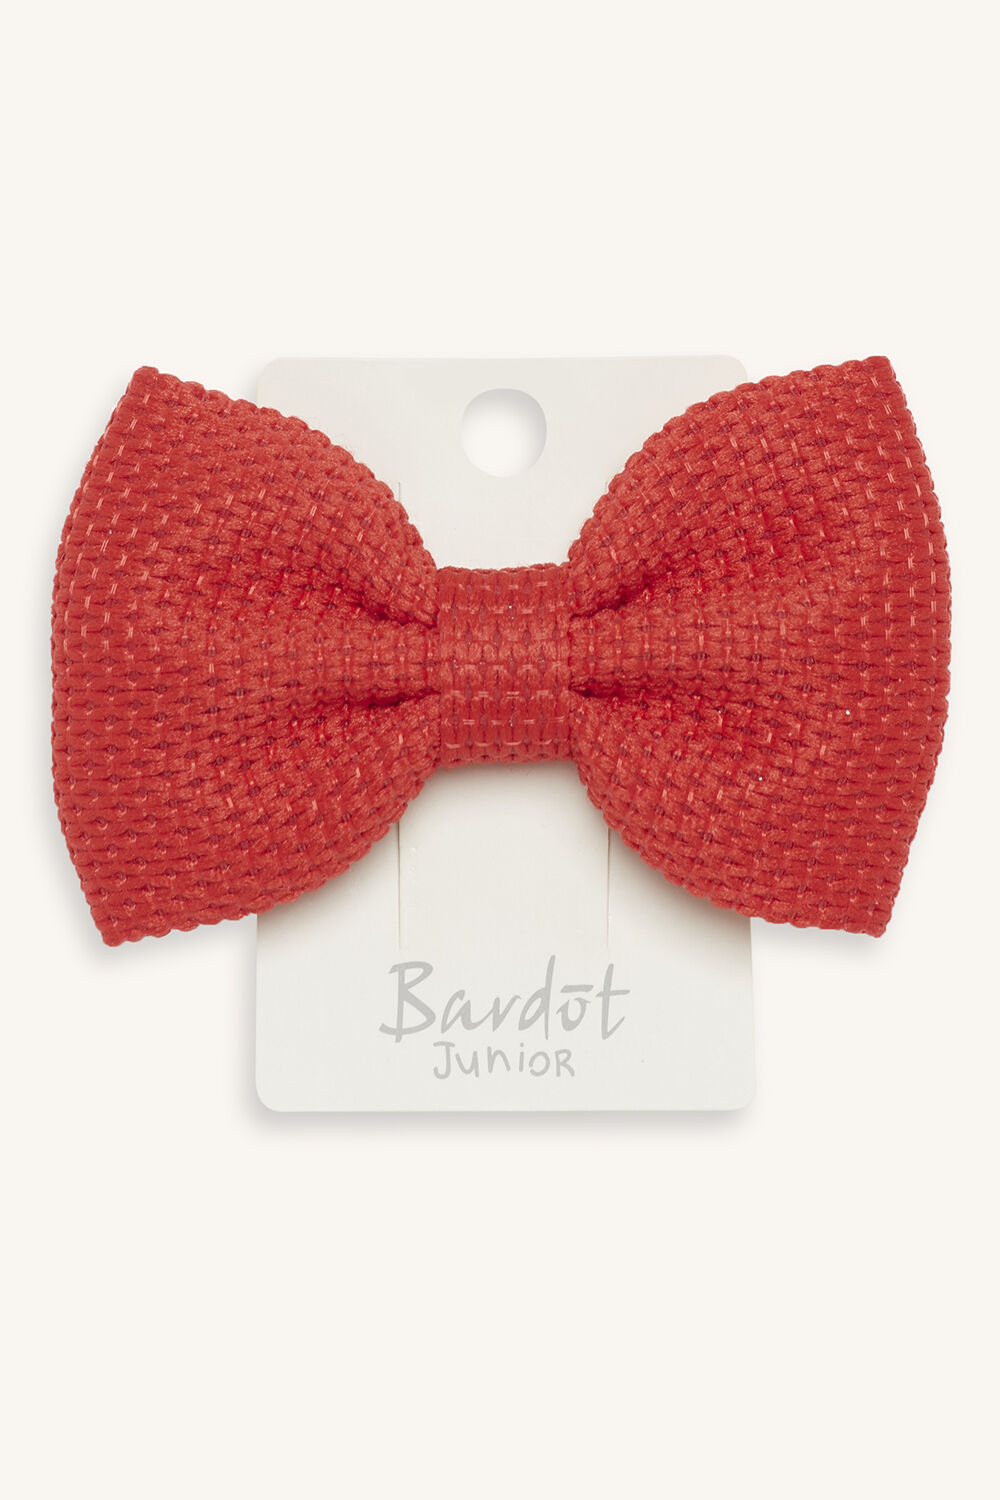 AVA STARLET BOW in colour RED BUD